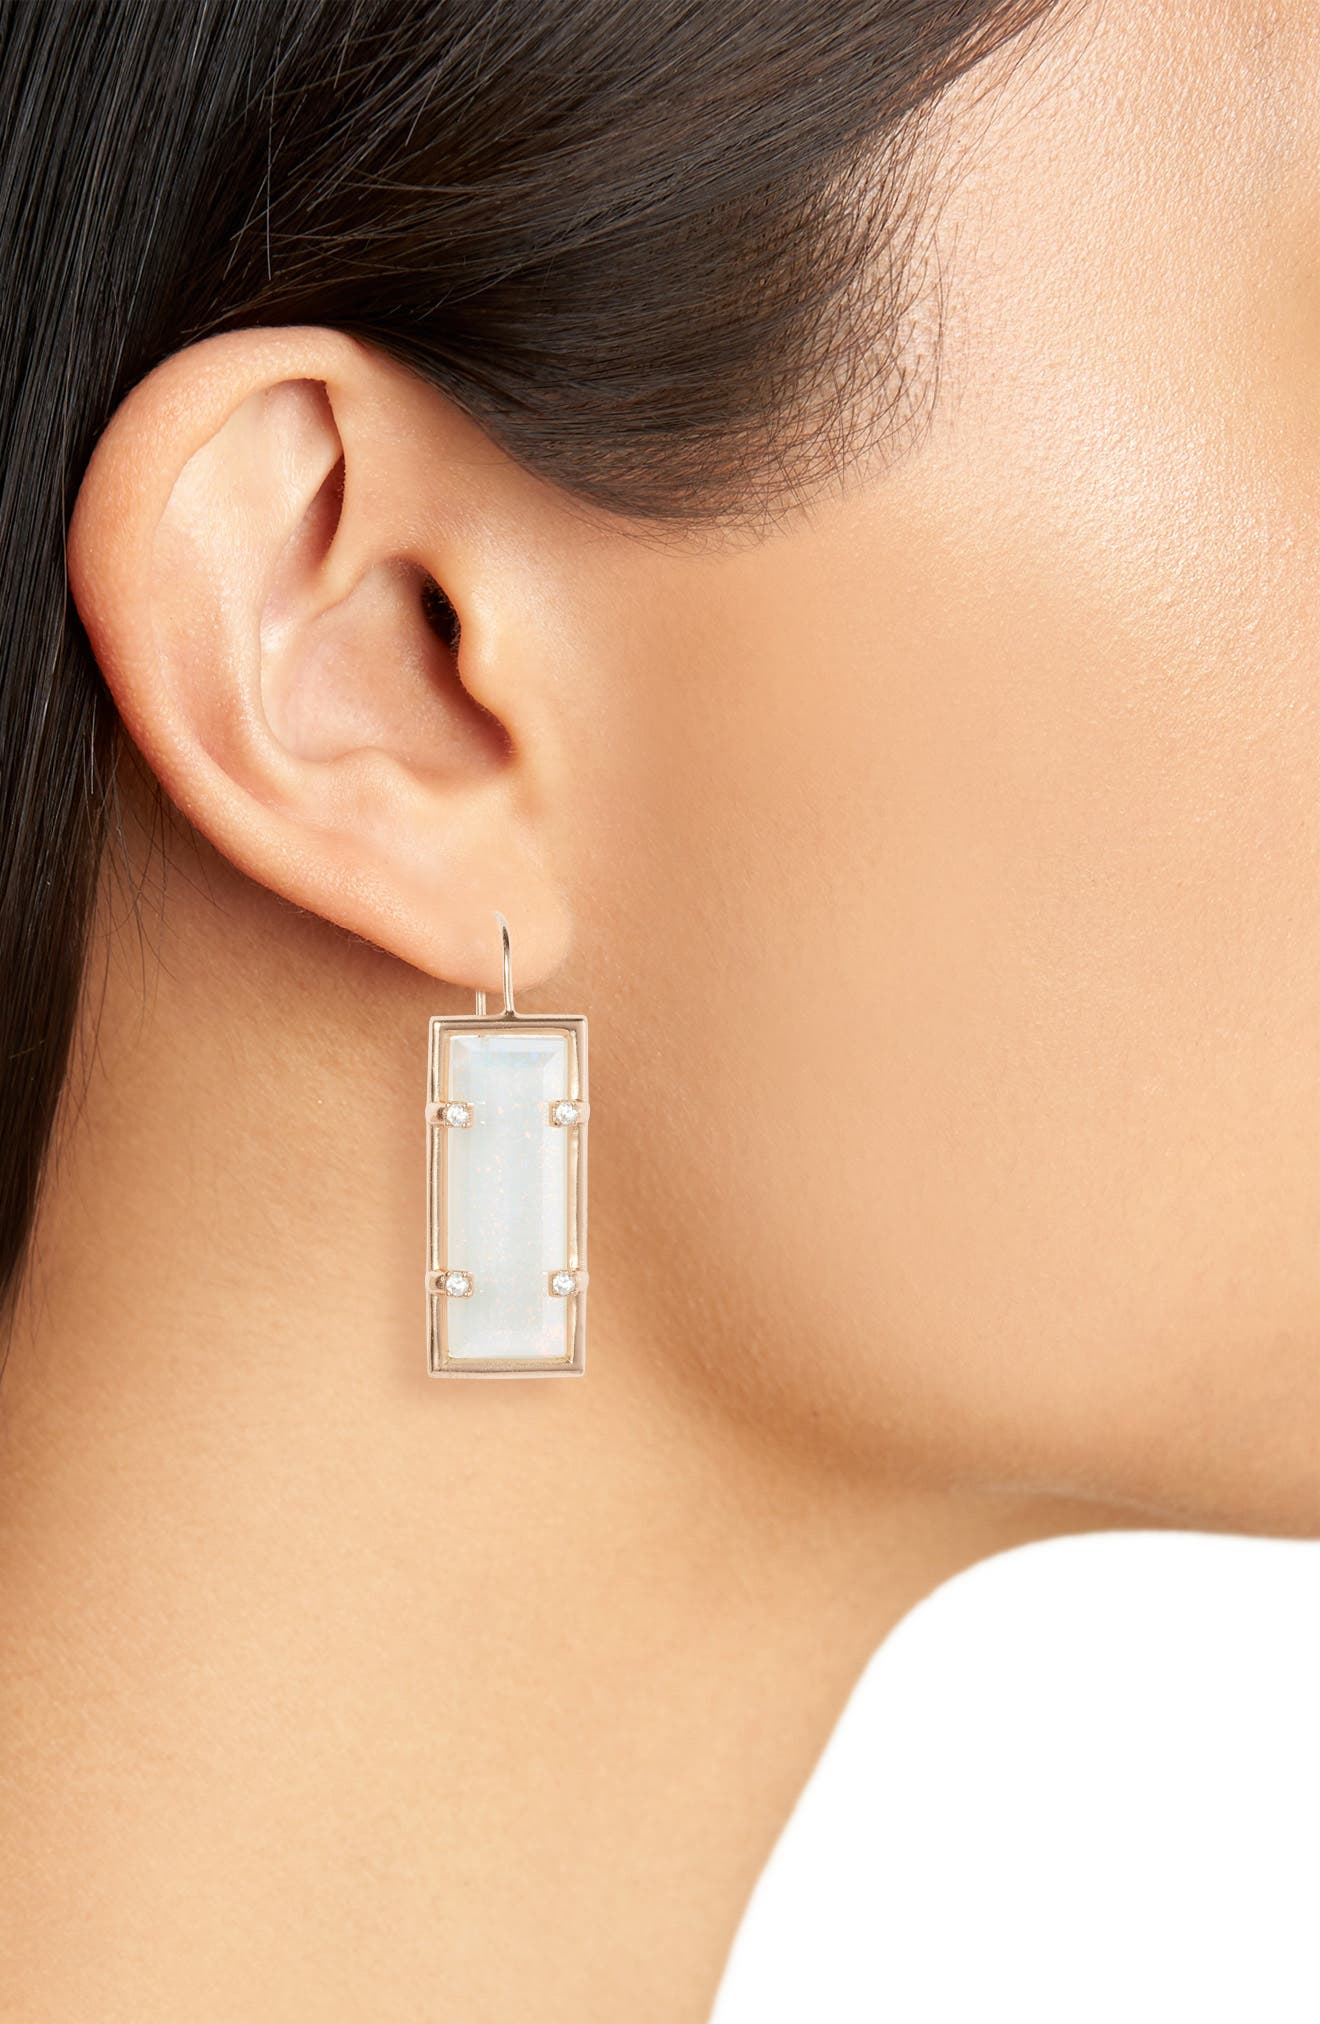 Knox Opal Drop Earrings,                             Alternate thumbnail 2, color,                             White Opal/ Rose Gold